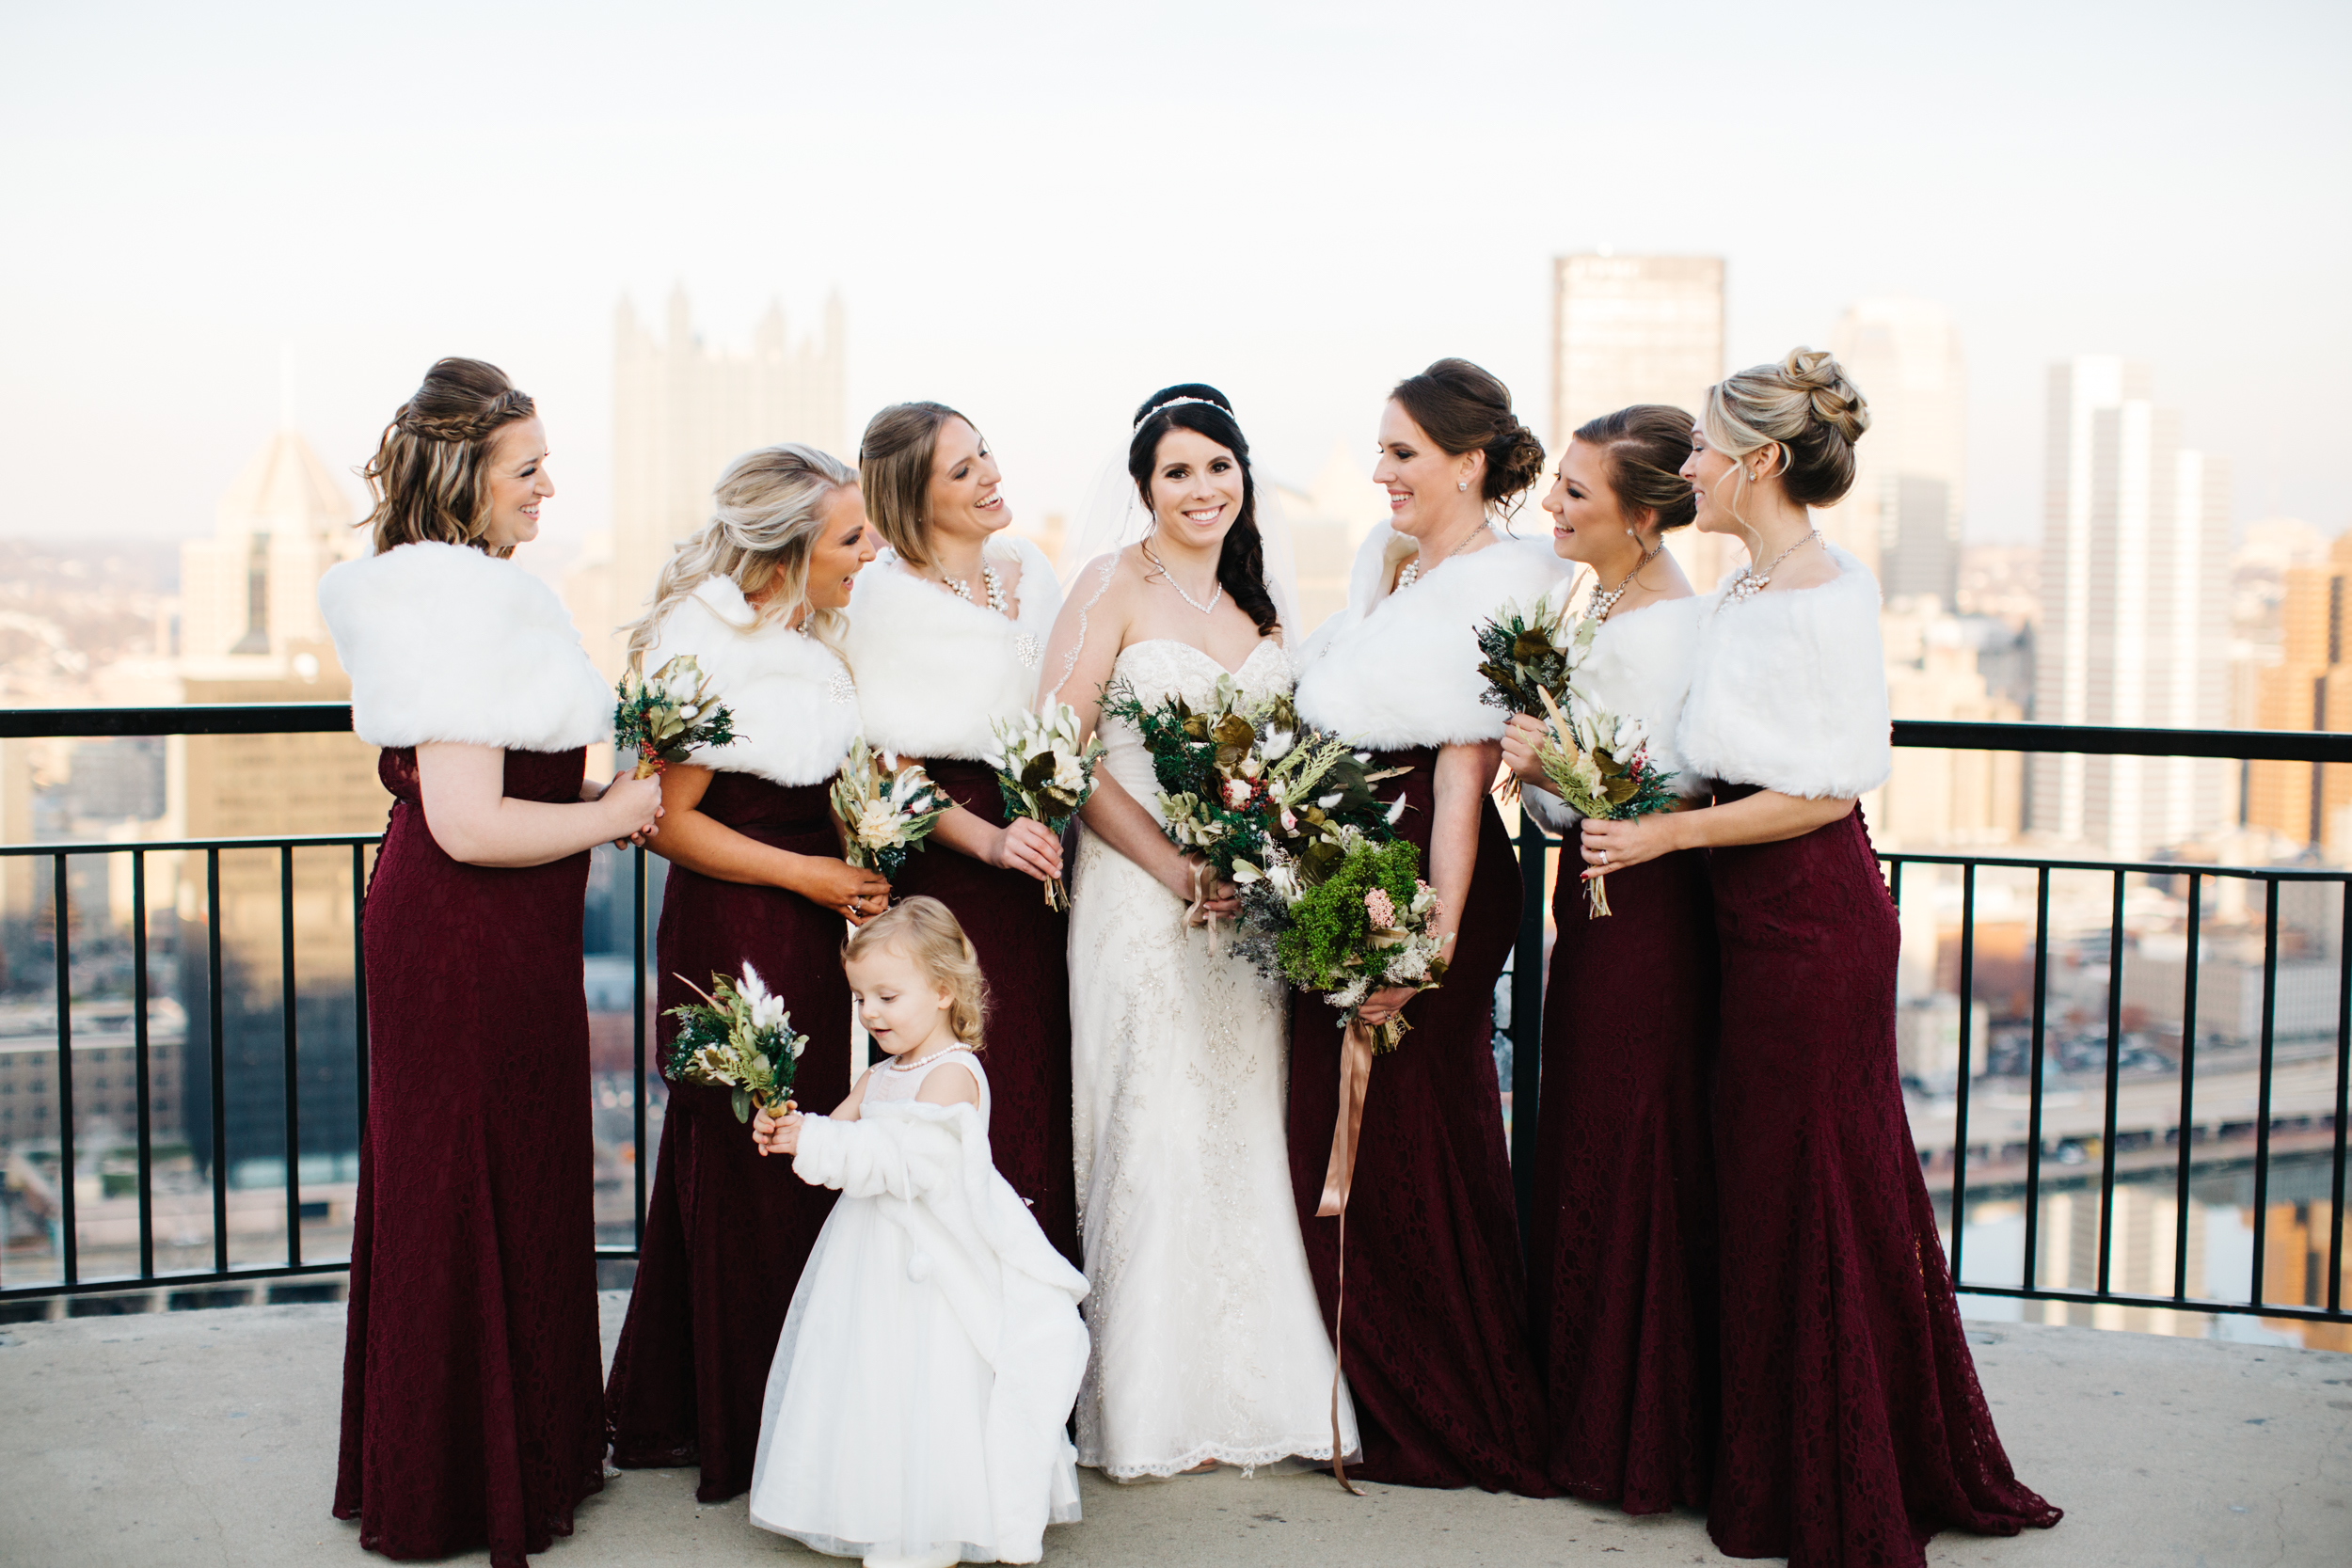 Sara_Brandon_Winter_Mt_Washington_Wedding (13 of 30).jpg